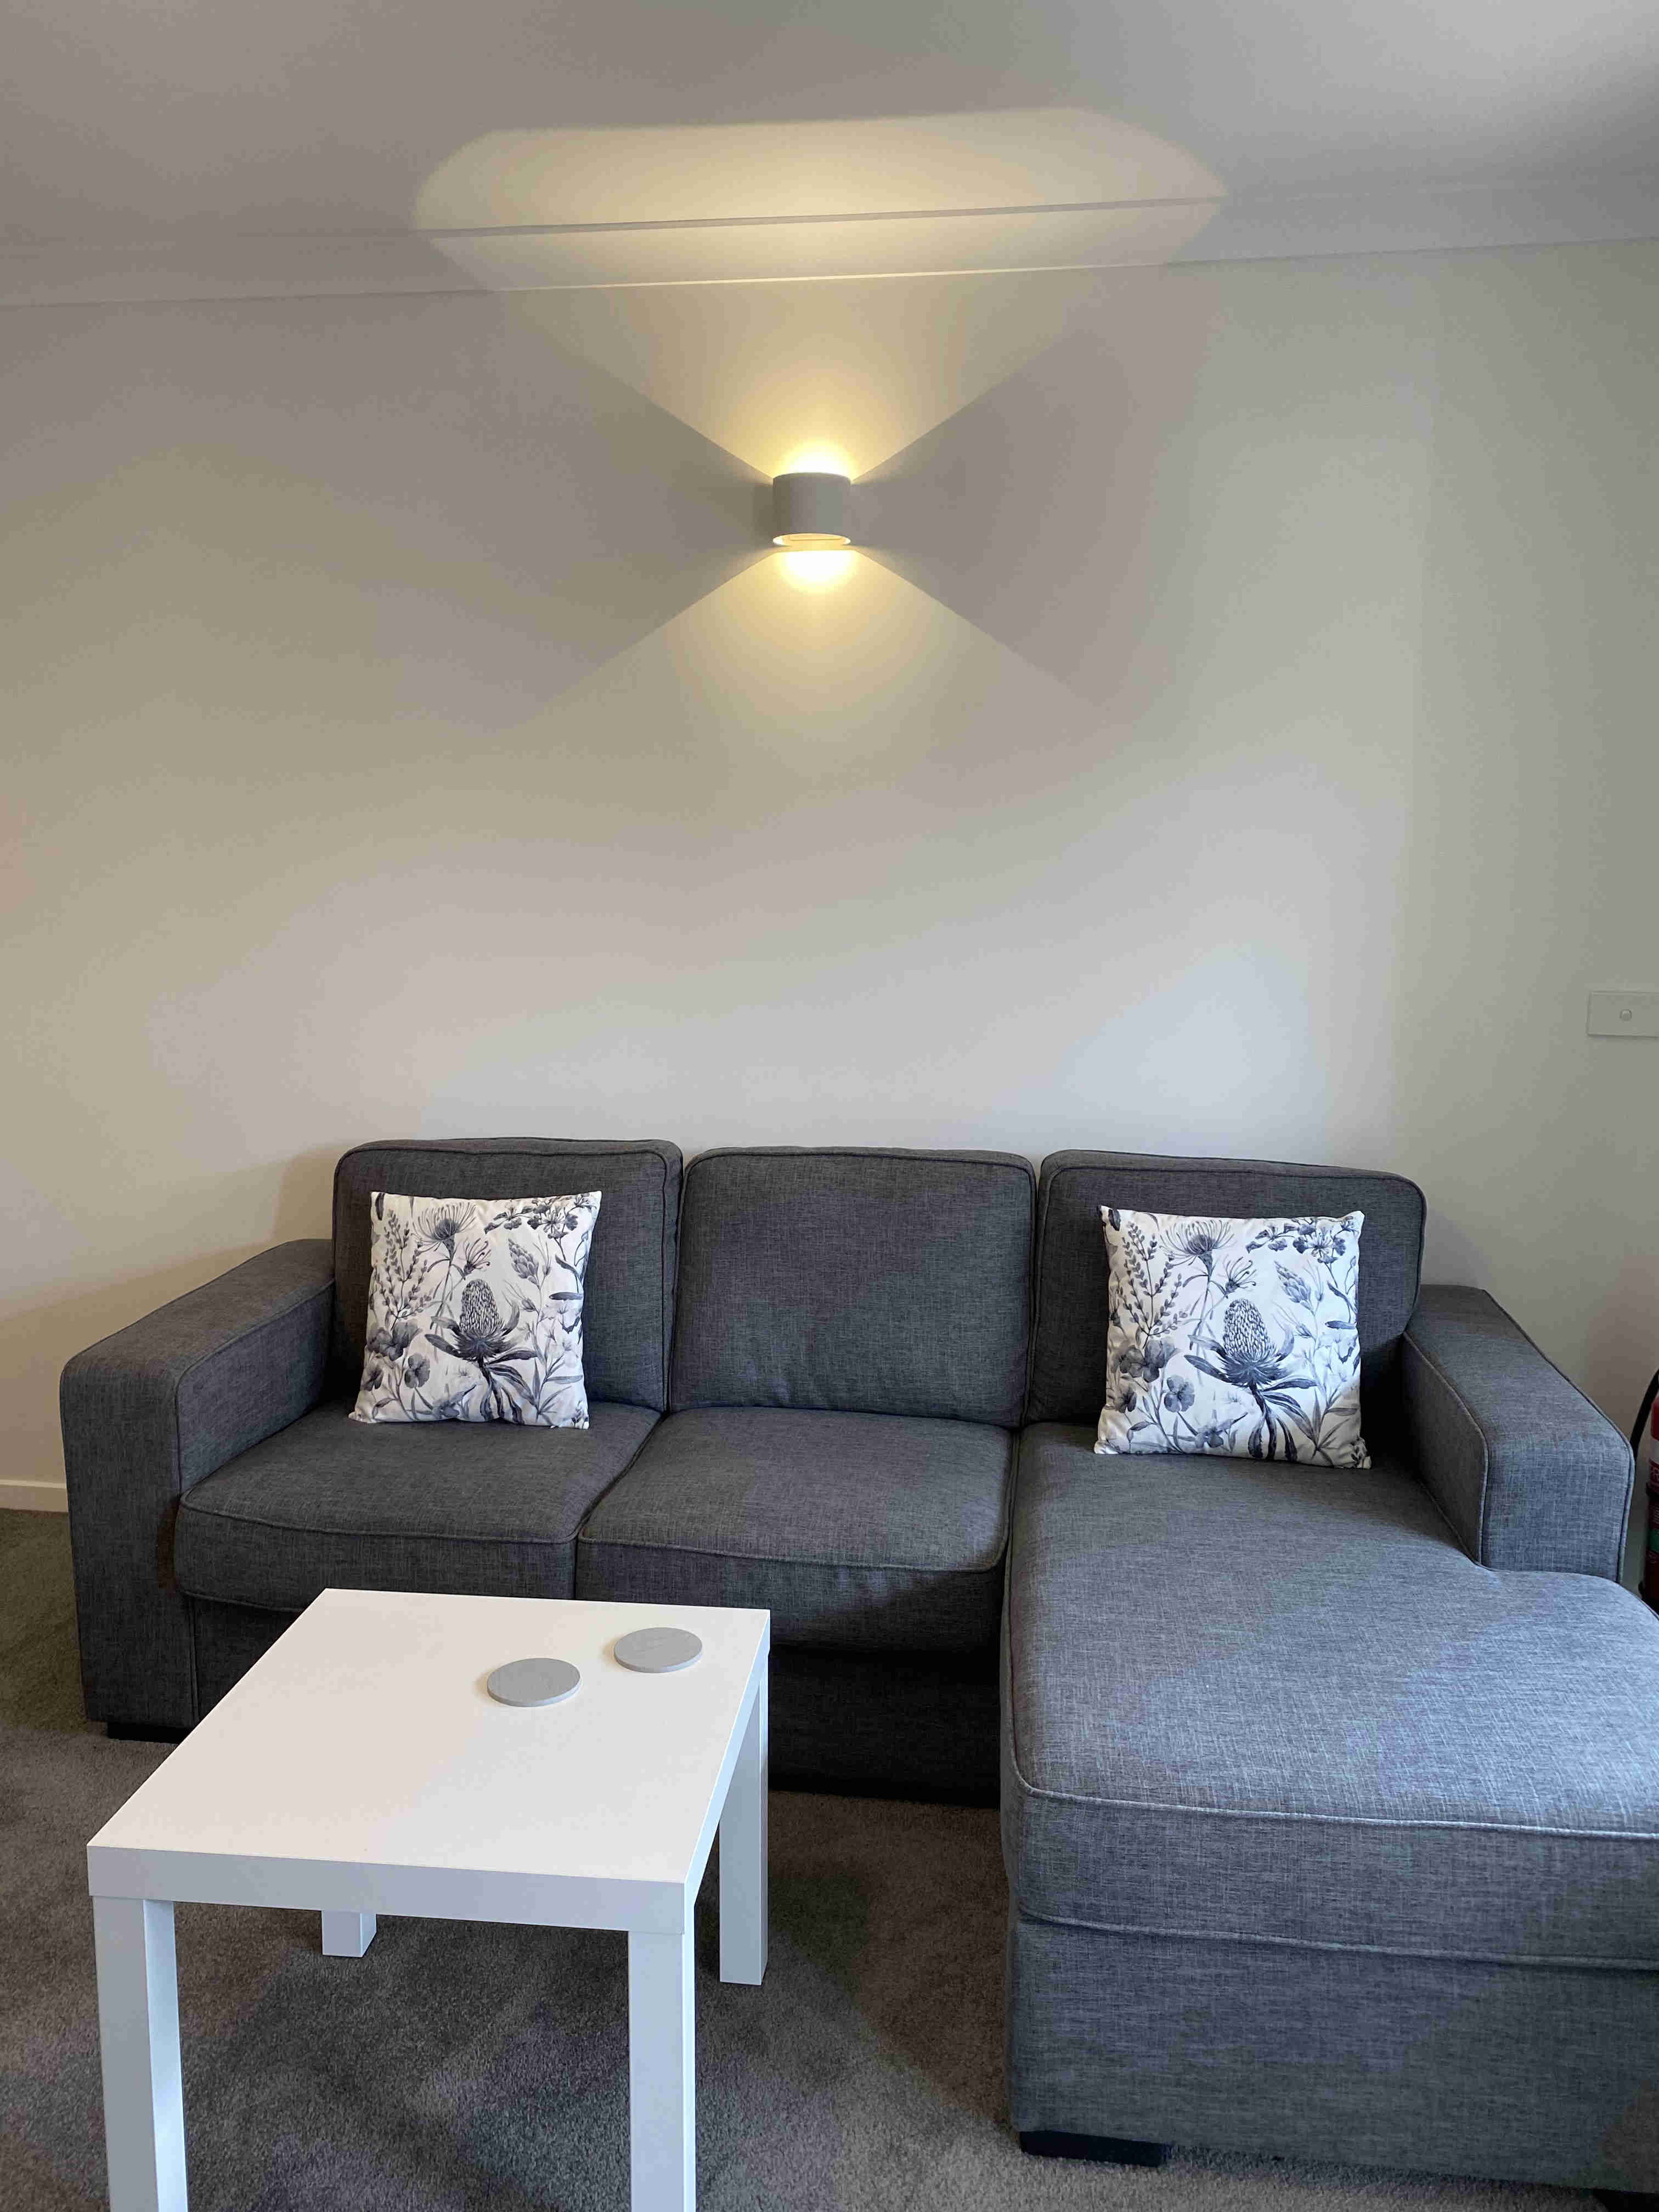 Chaise lounge suite and coffee table in one bedroom apartments